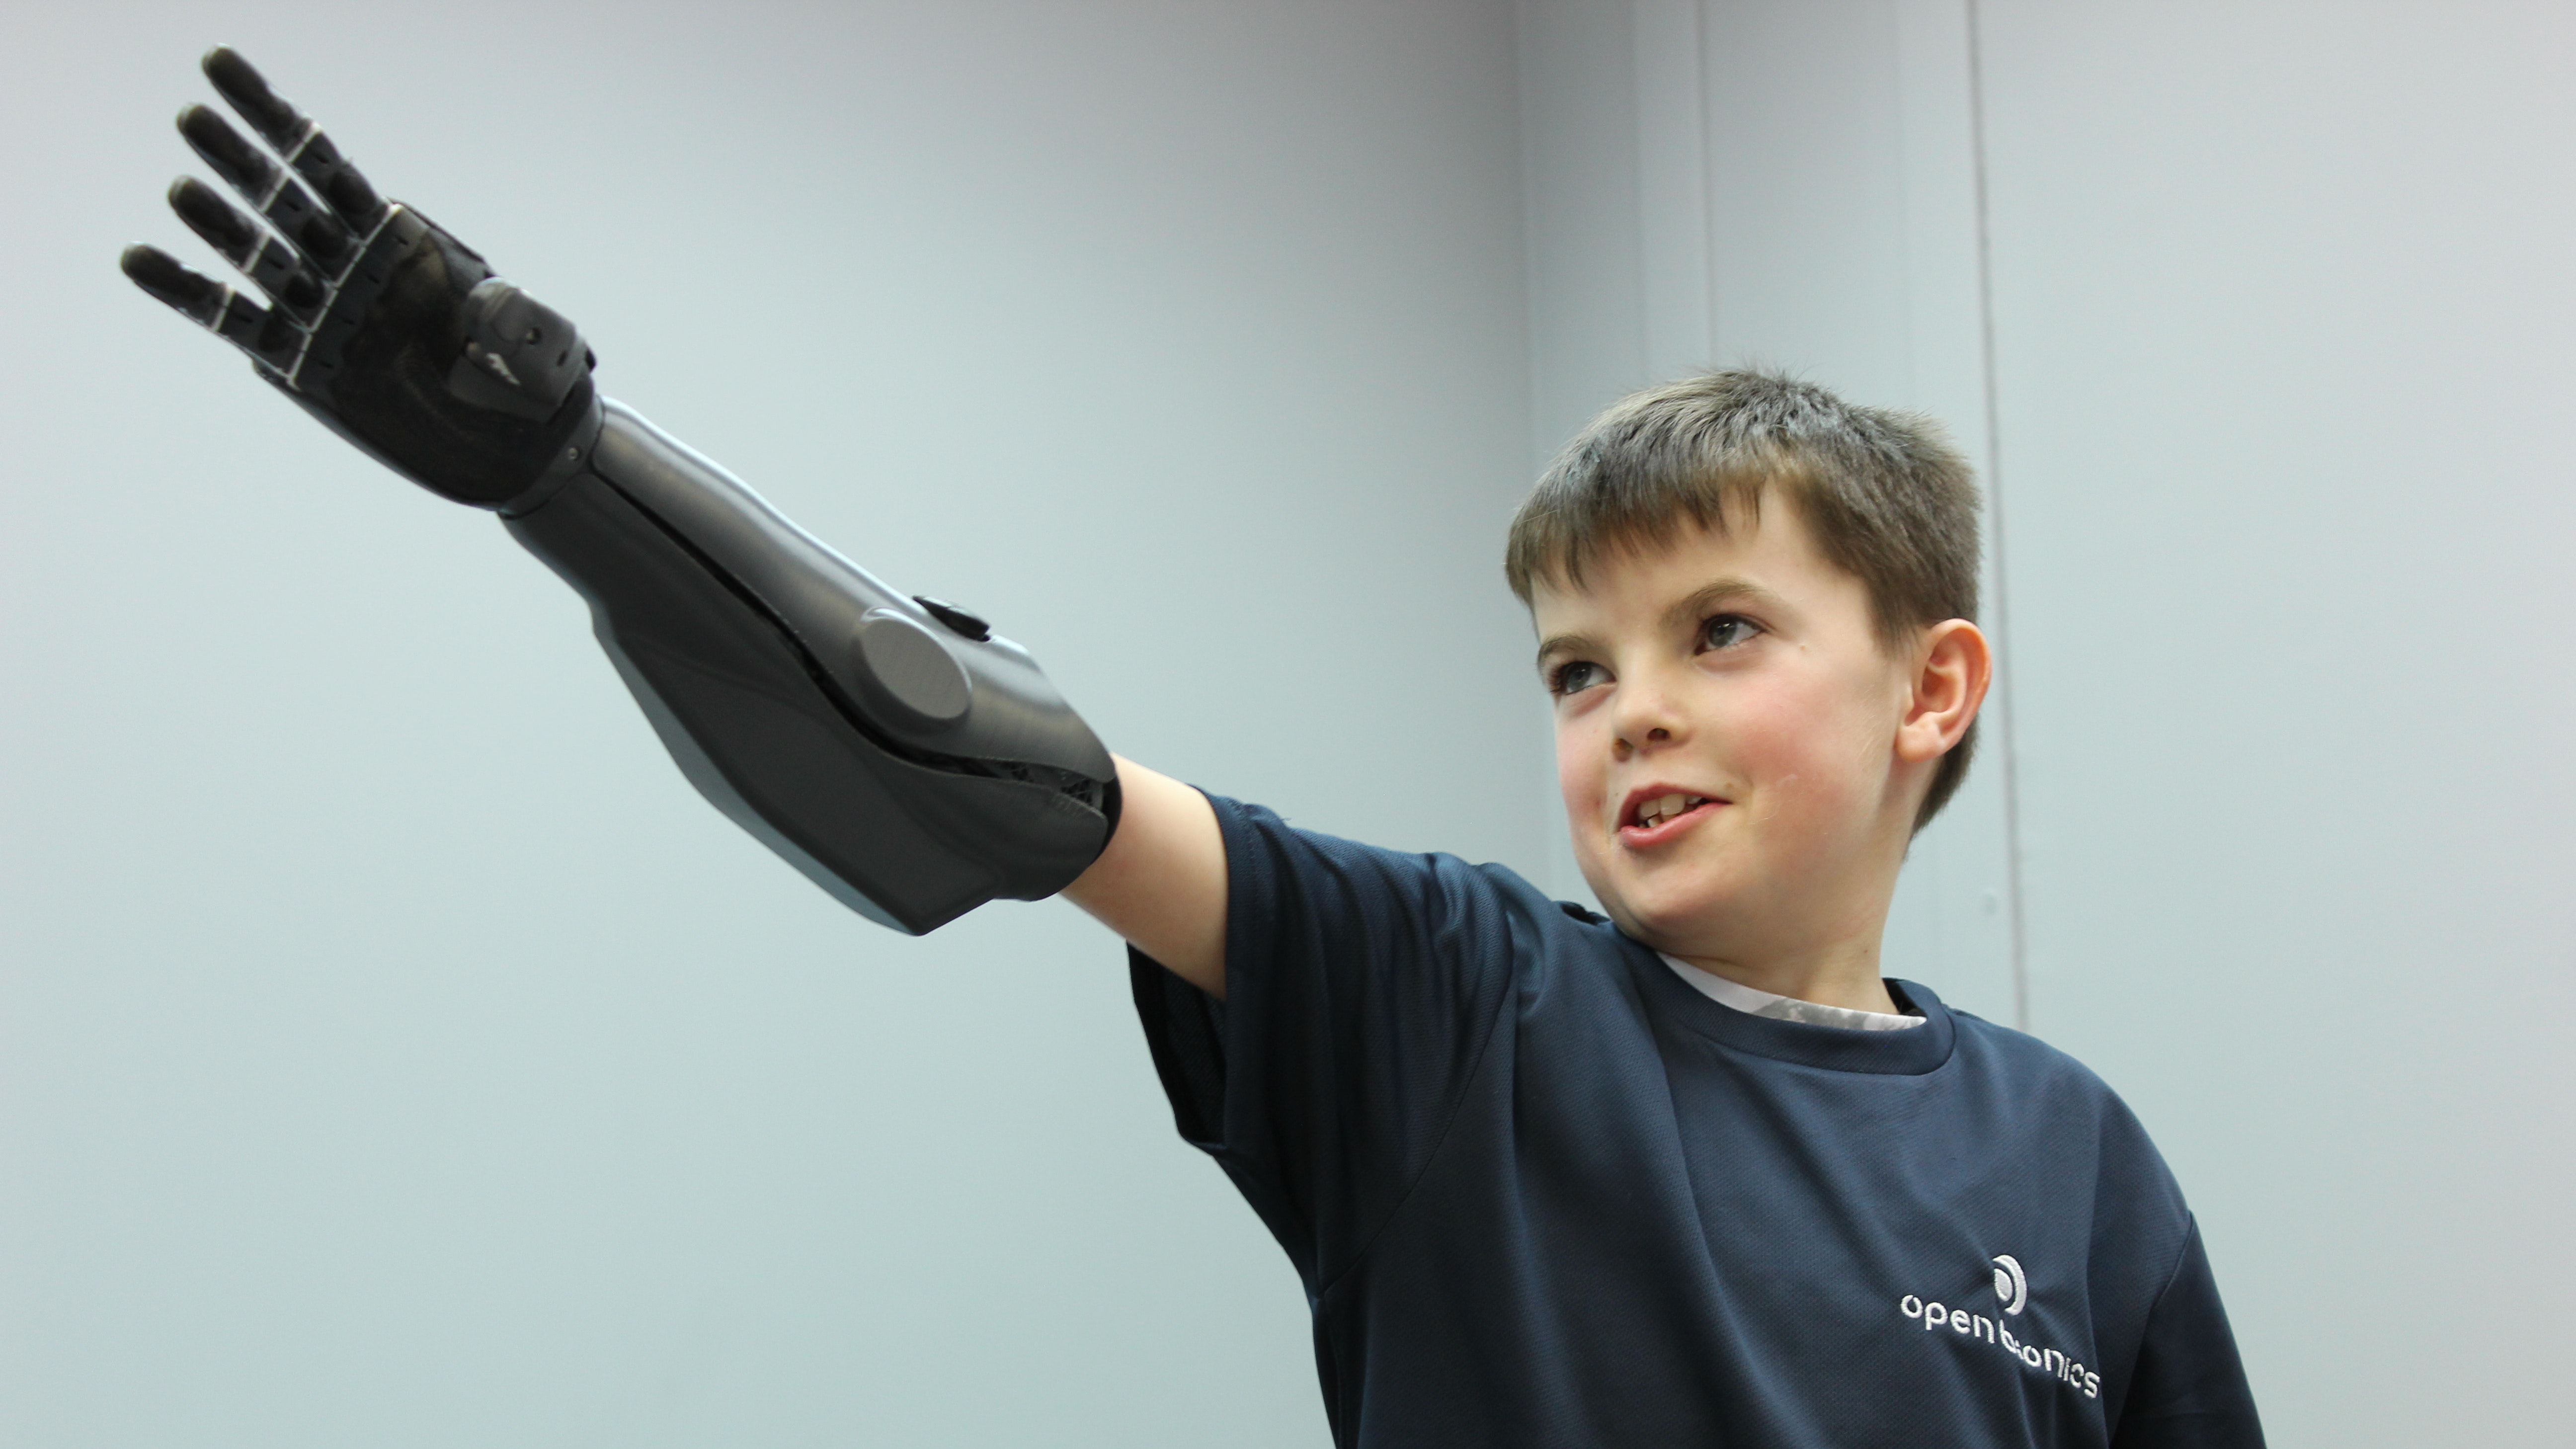 World's first 3D-printed arms for amputees created by Open